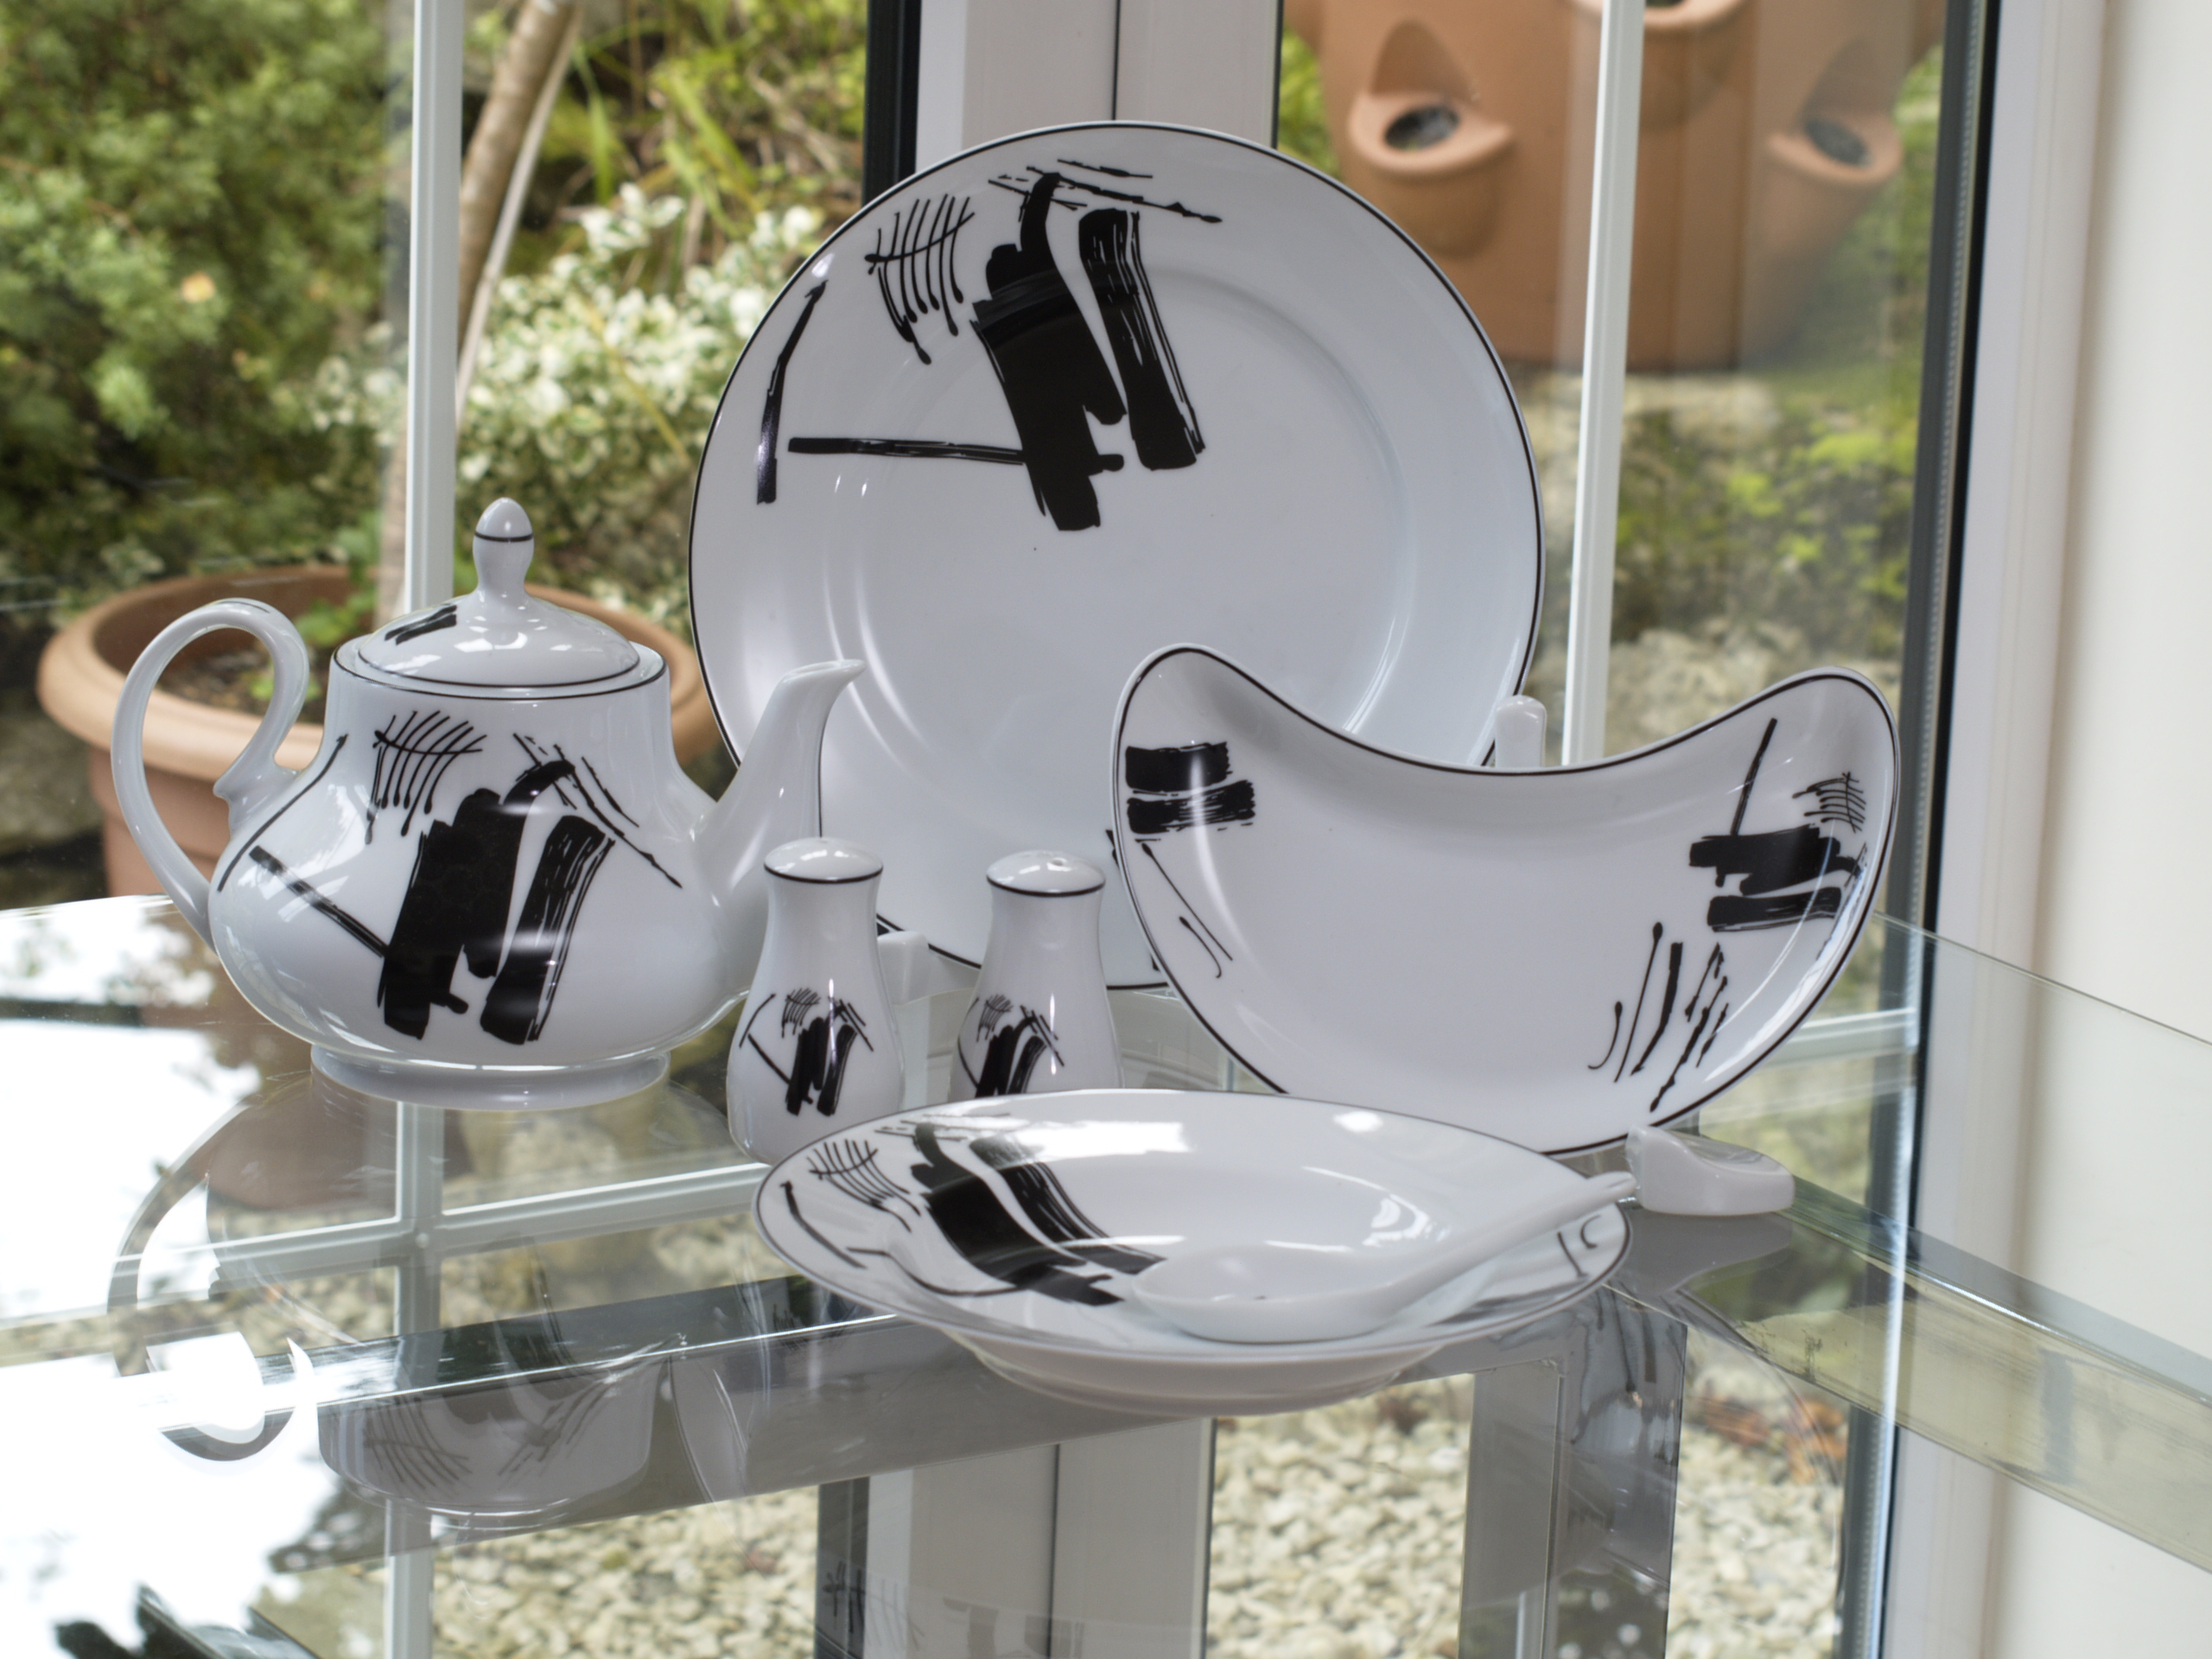 ABSTRACT 96 PIECE DINNER SERVICE